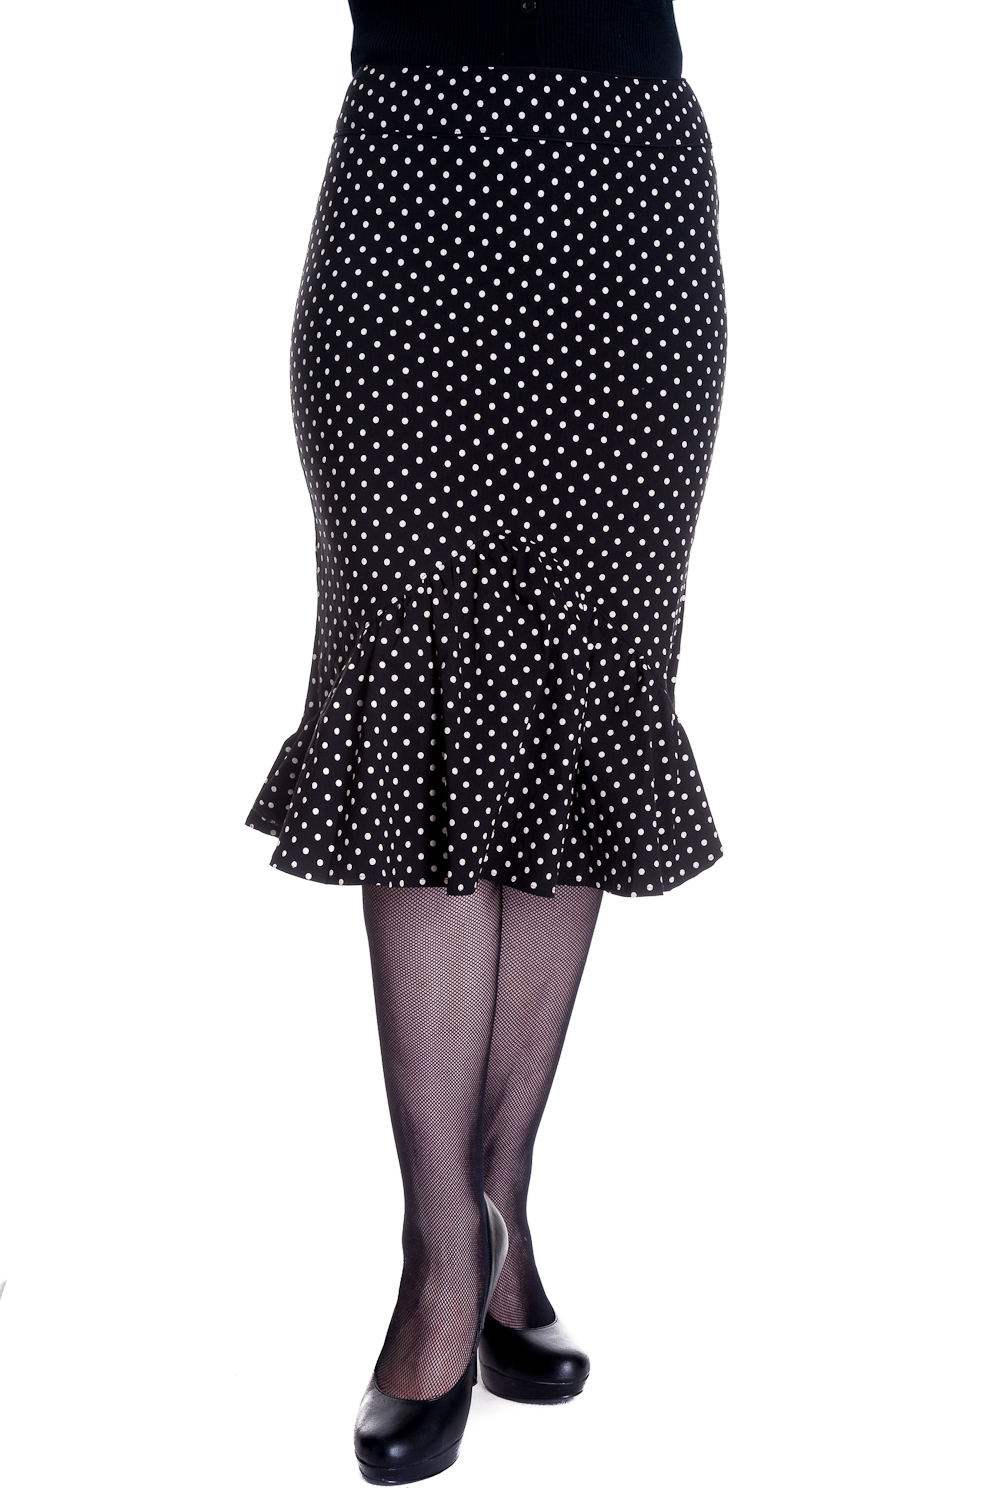 d3047657cb Details about RKP70 Hell Bunny Momo Pencil Skirt Polka Dot Pin Up Office  Wiggle Fishtail